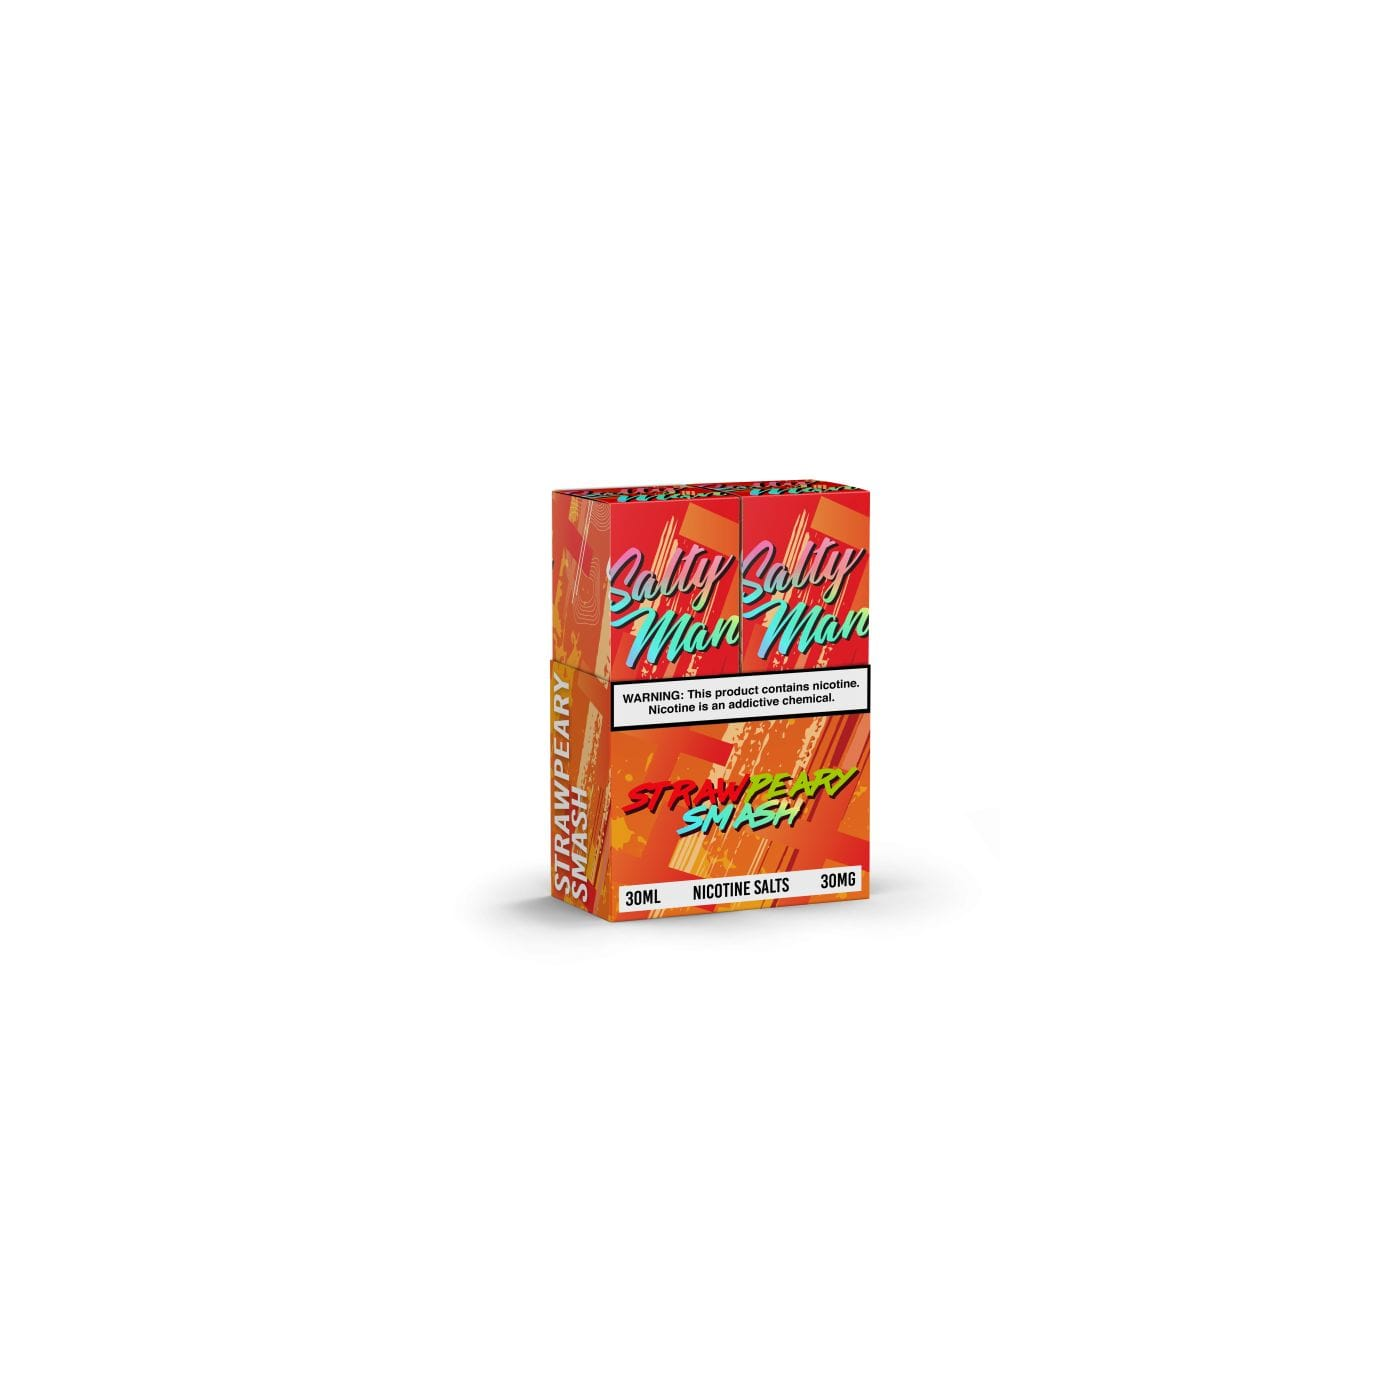 Salty Man Strawpeary Smash - 2 Pack